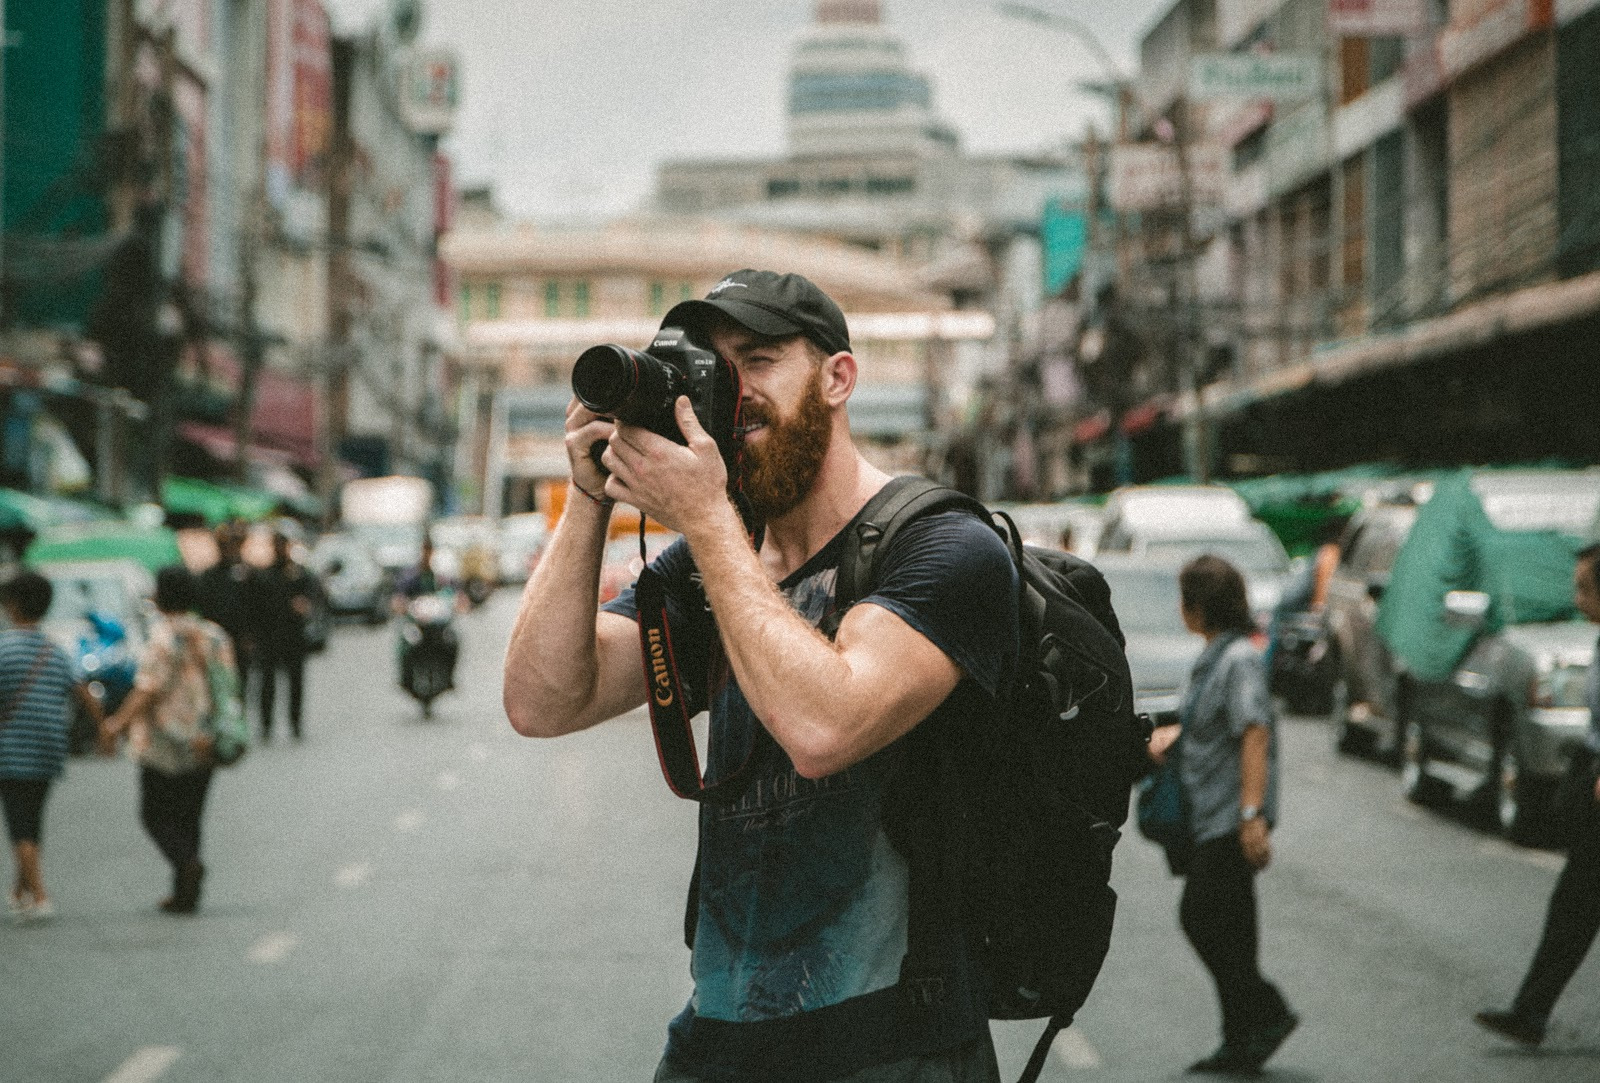 Use your skills, work experience and hobbies to become a digital nomad.